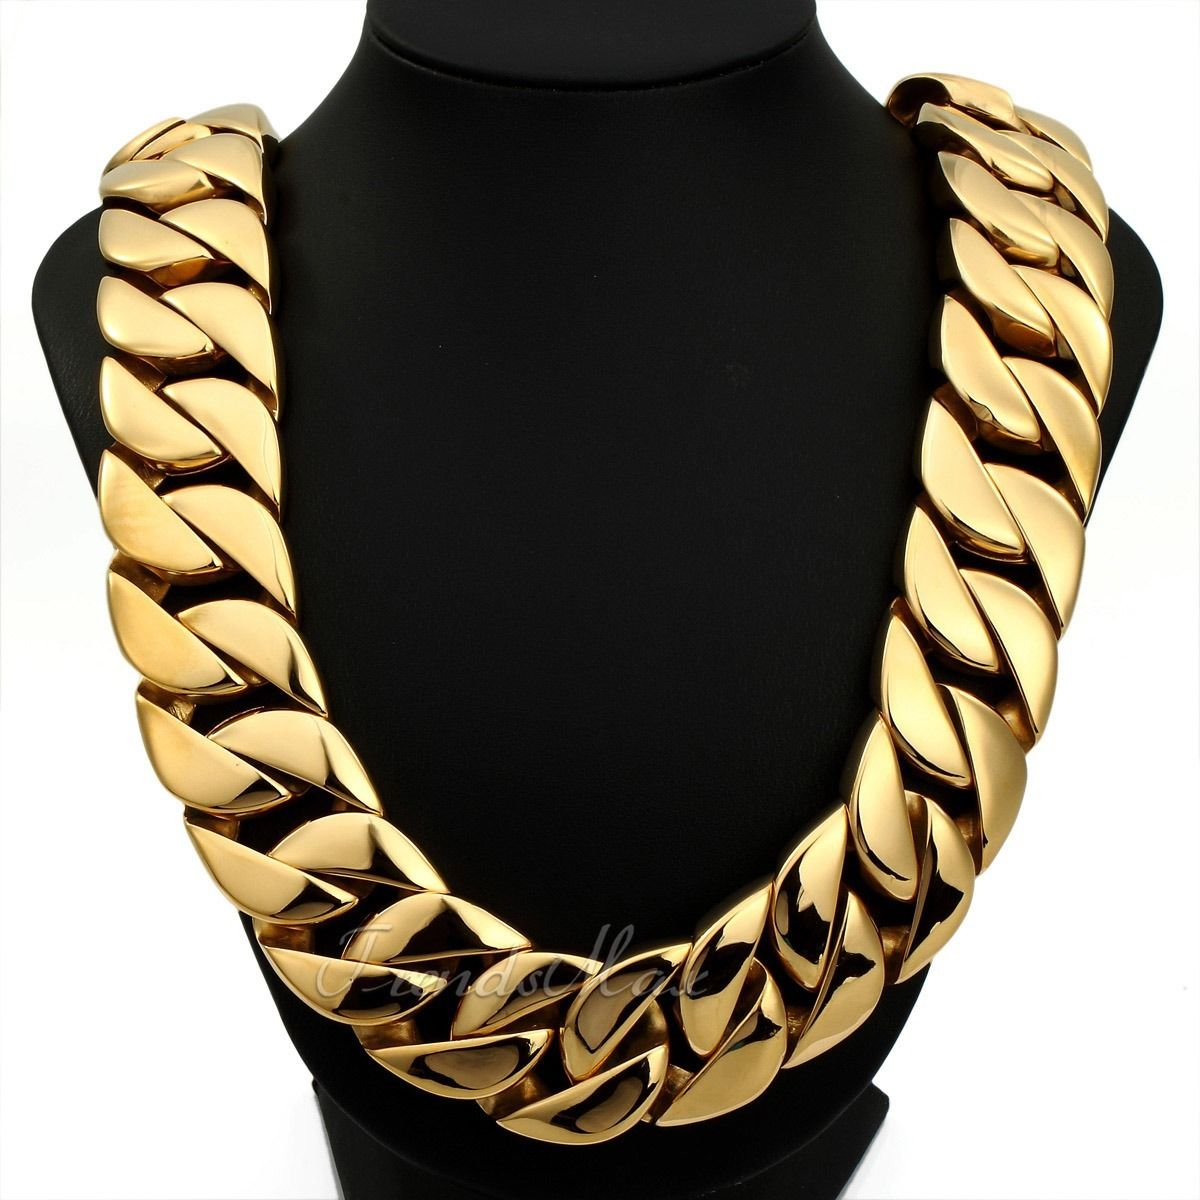 chain ebay mm necklace cuban itm hollow curb yellow img gold link mens inches